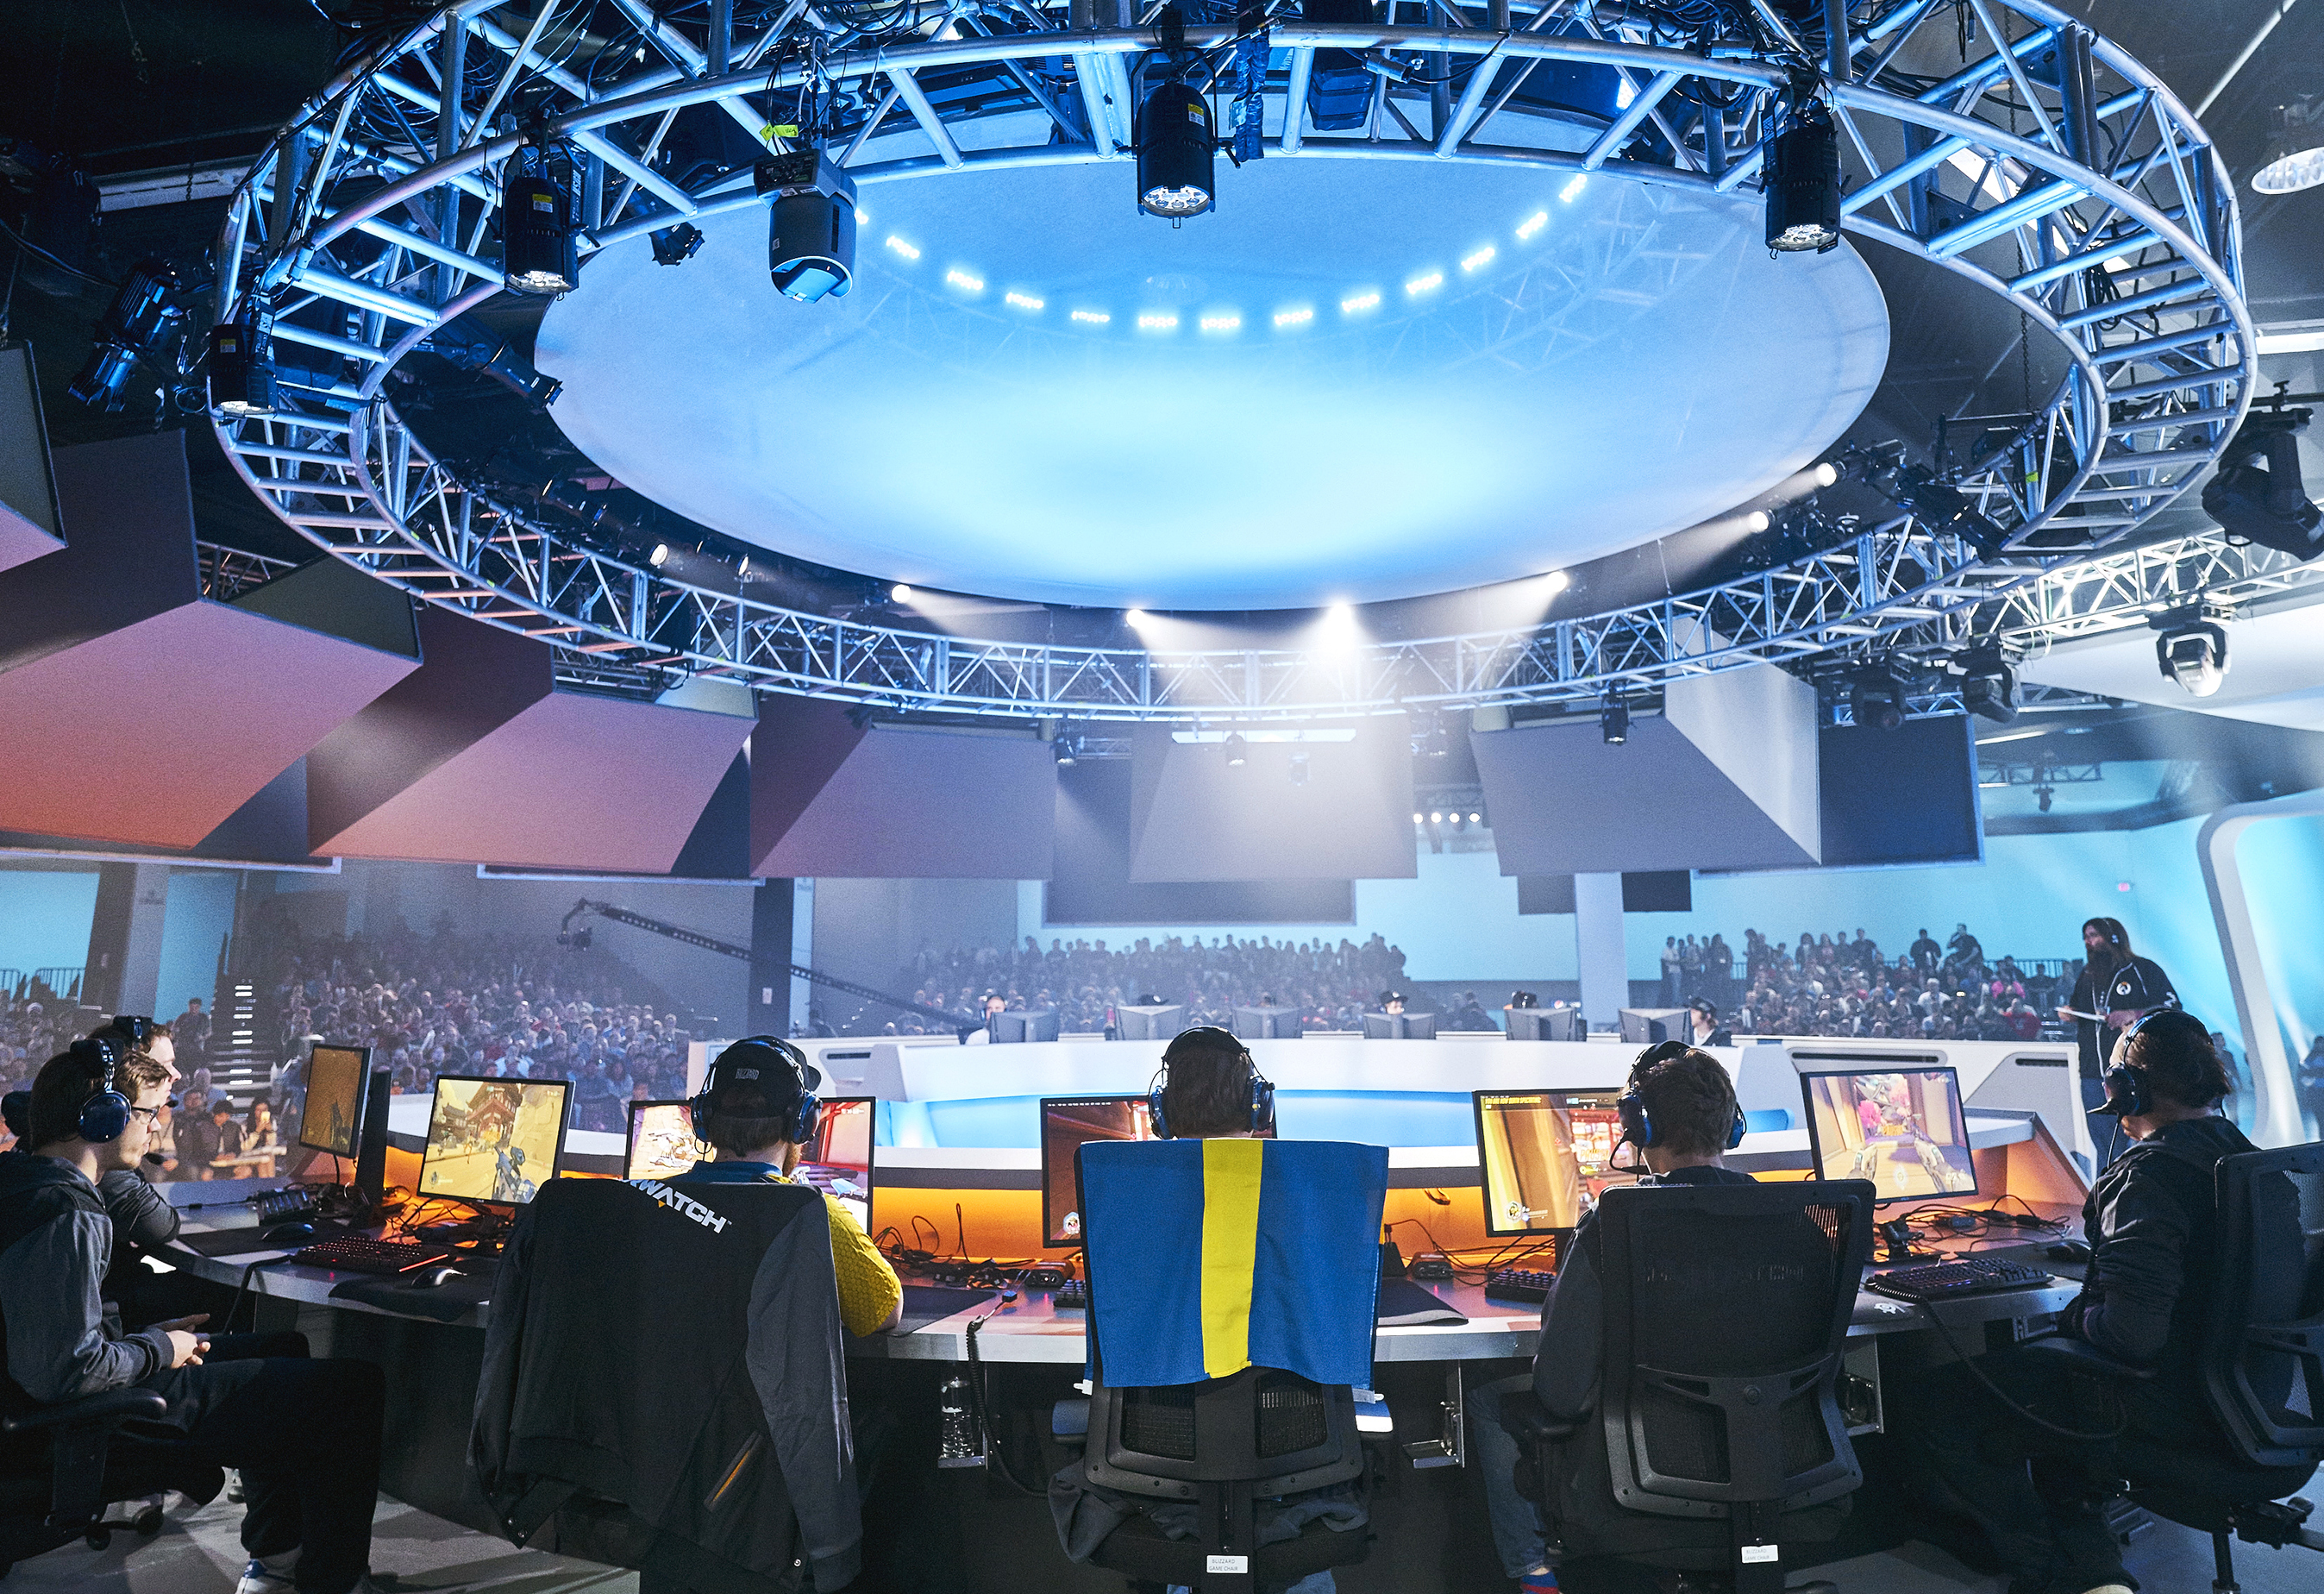 """""""Overwatch"""" competitors inside the The Overwatch Arena at BlizzCon 2016. BlizzCon 2016 was held at the Anaheim Convention Center in California."""